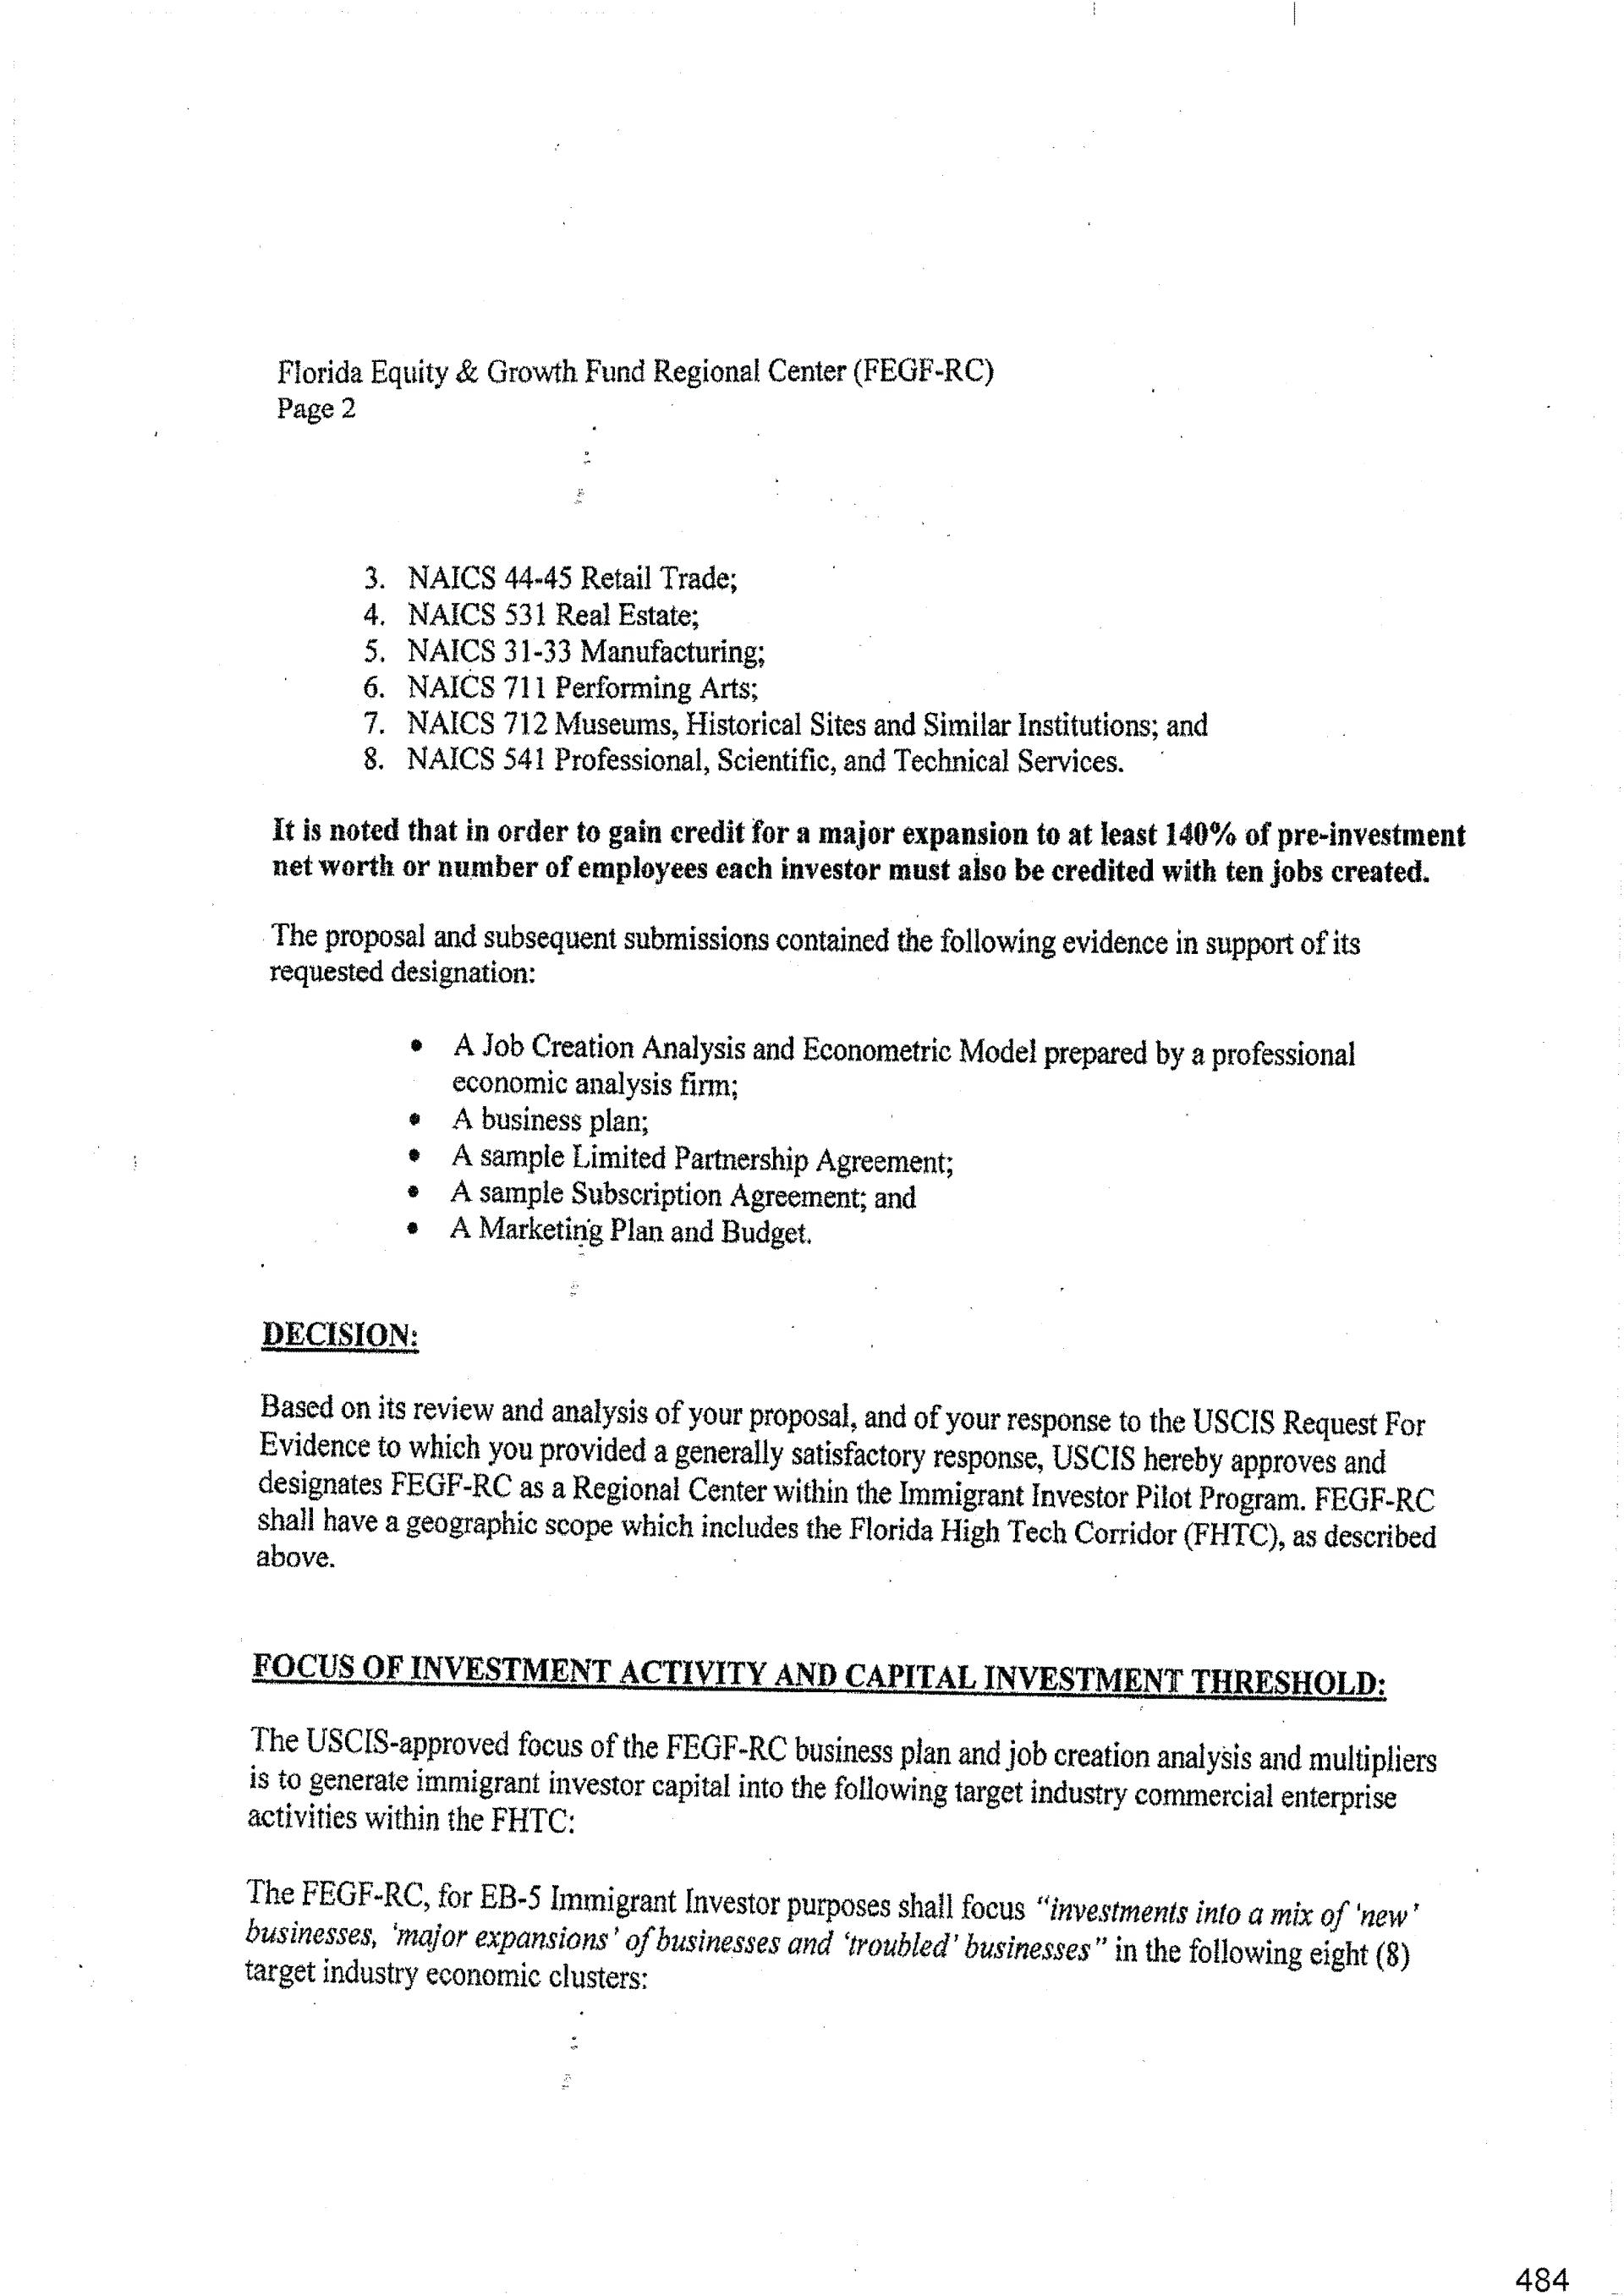 Free Real Estate Letter Of Intent Template - Letter Intent Real Estate Template Partnership It Service